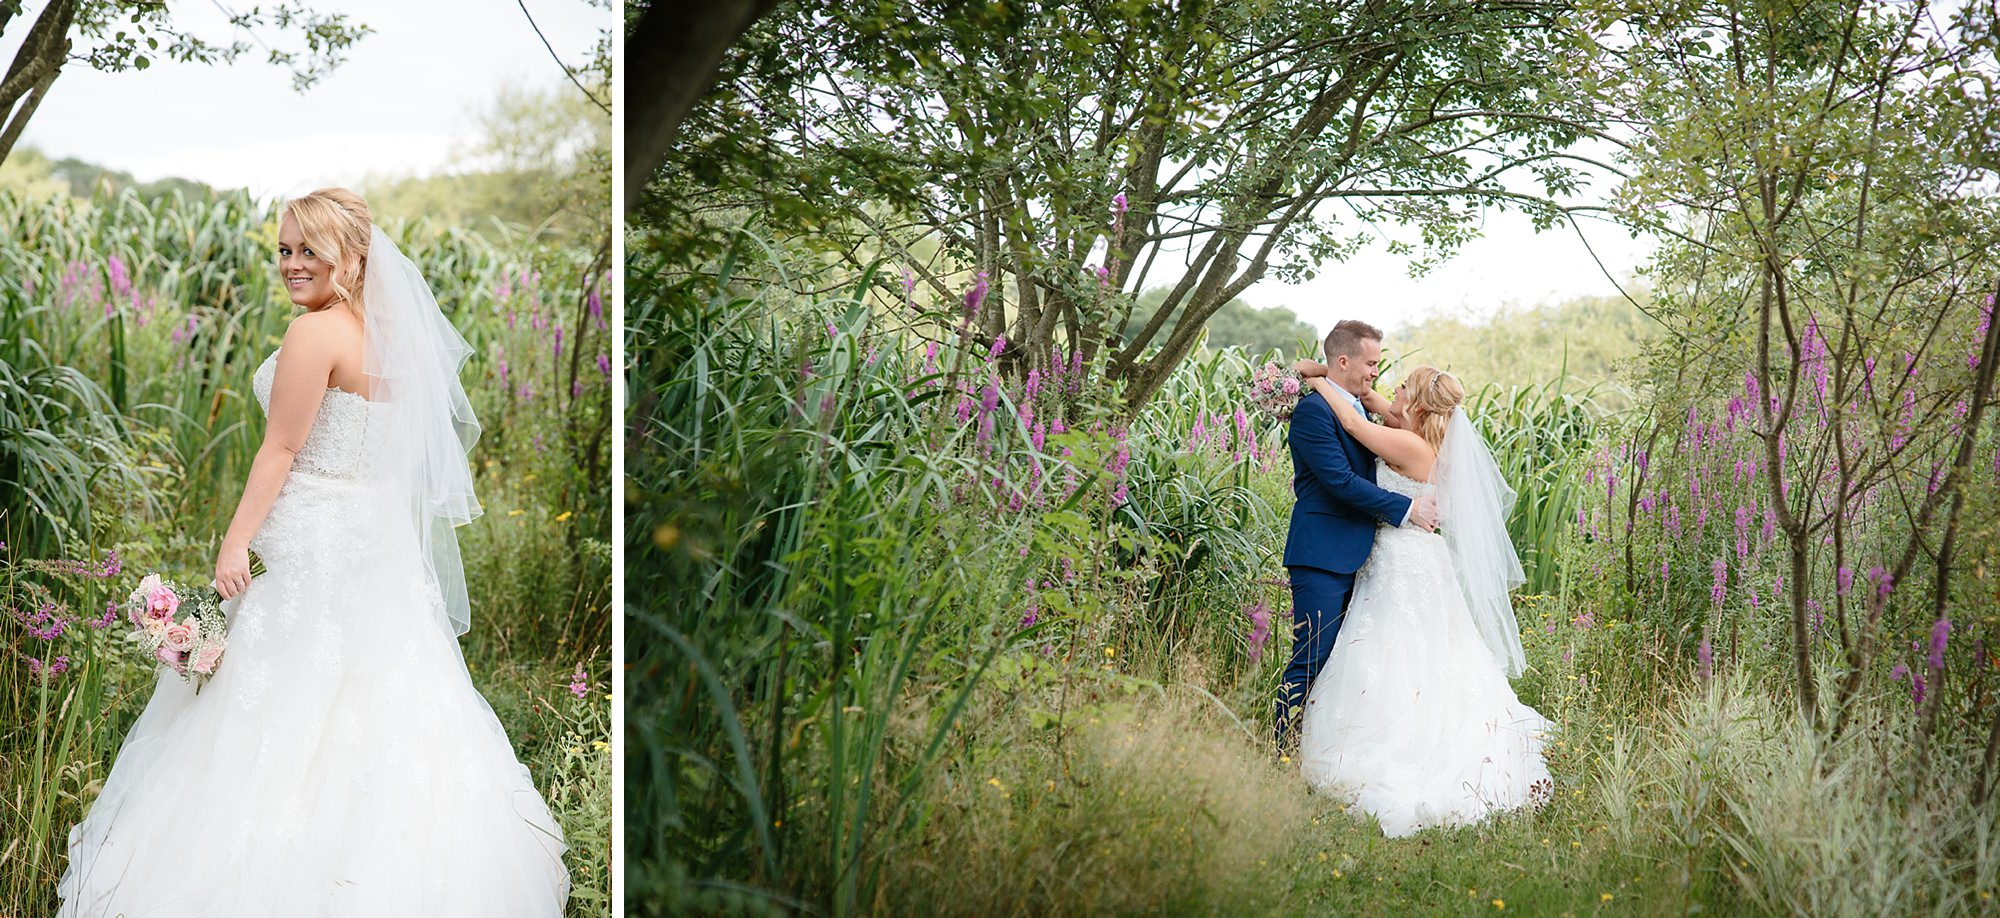 Old Greens Barn Newdigate wedding photography bride and groom in gardens